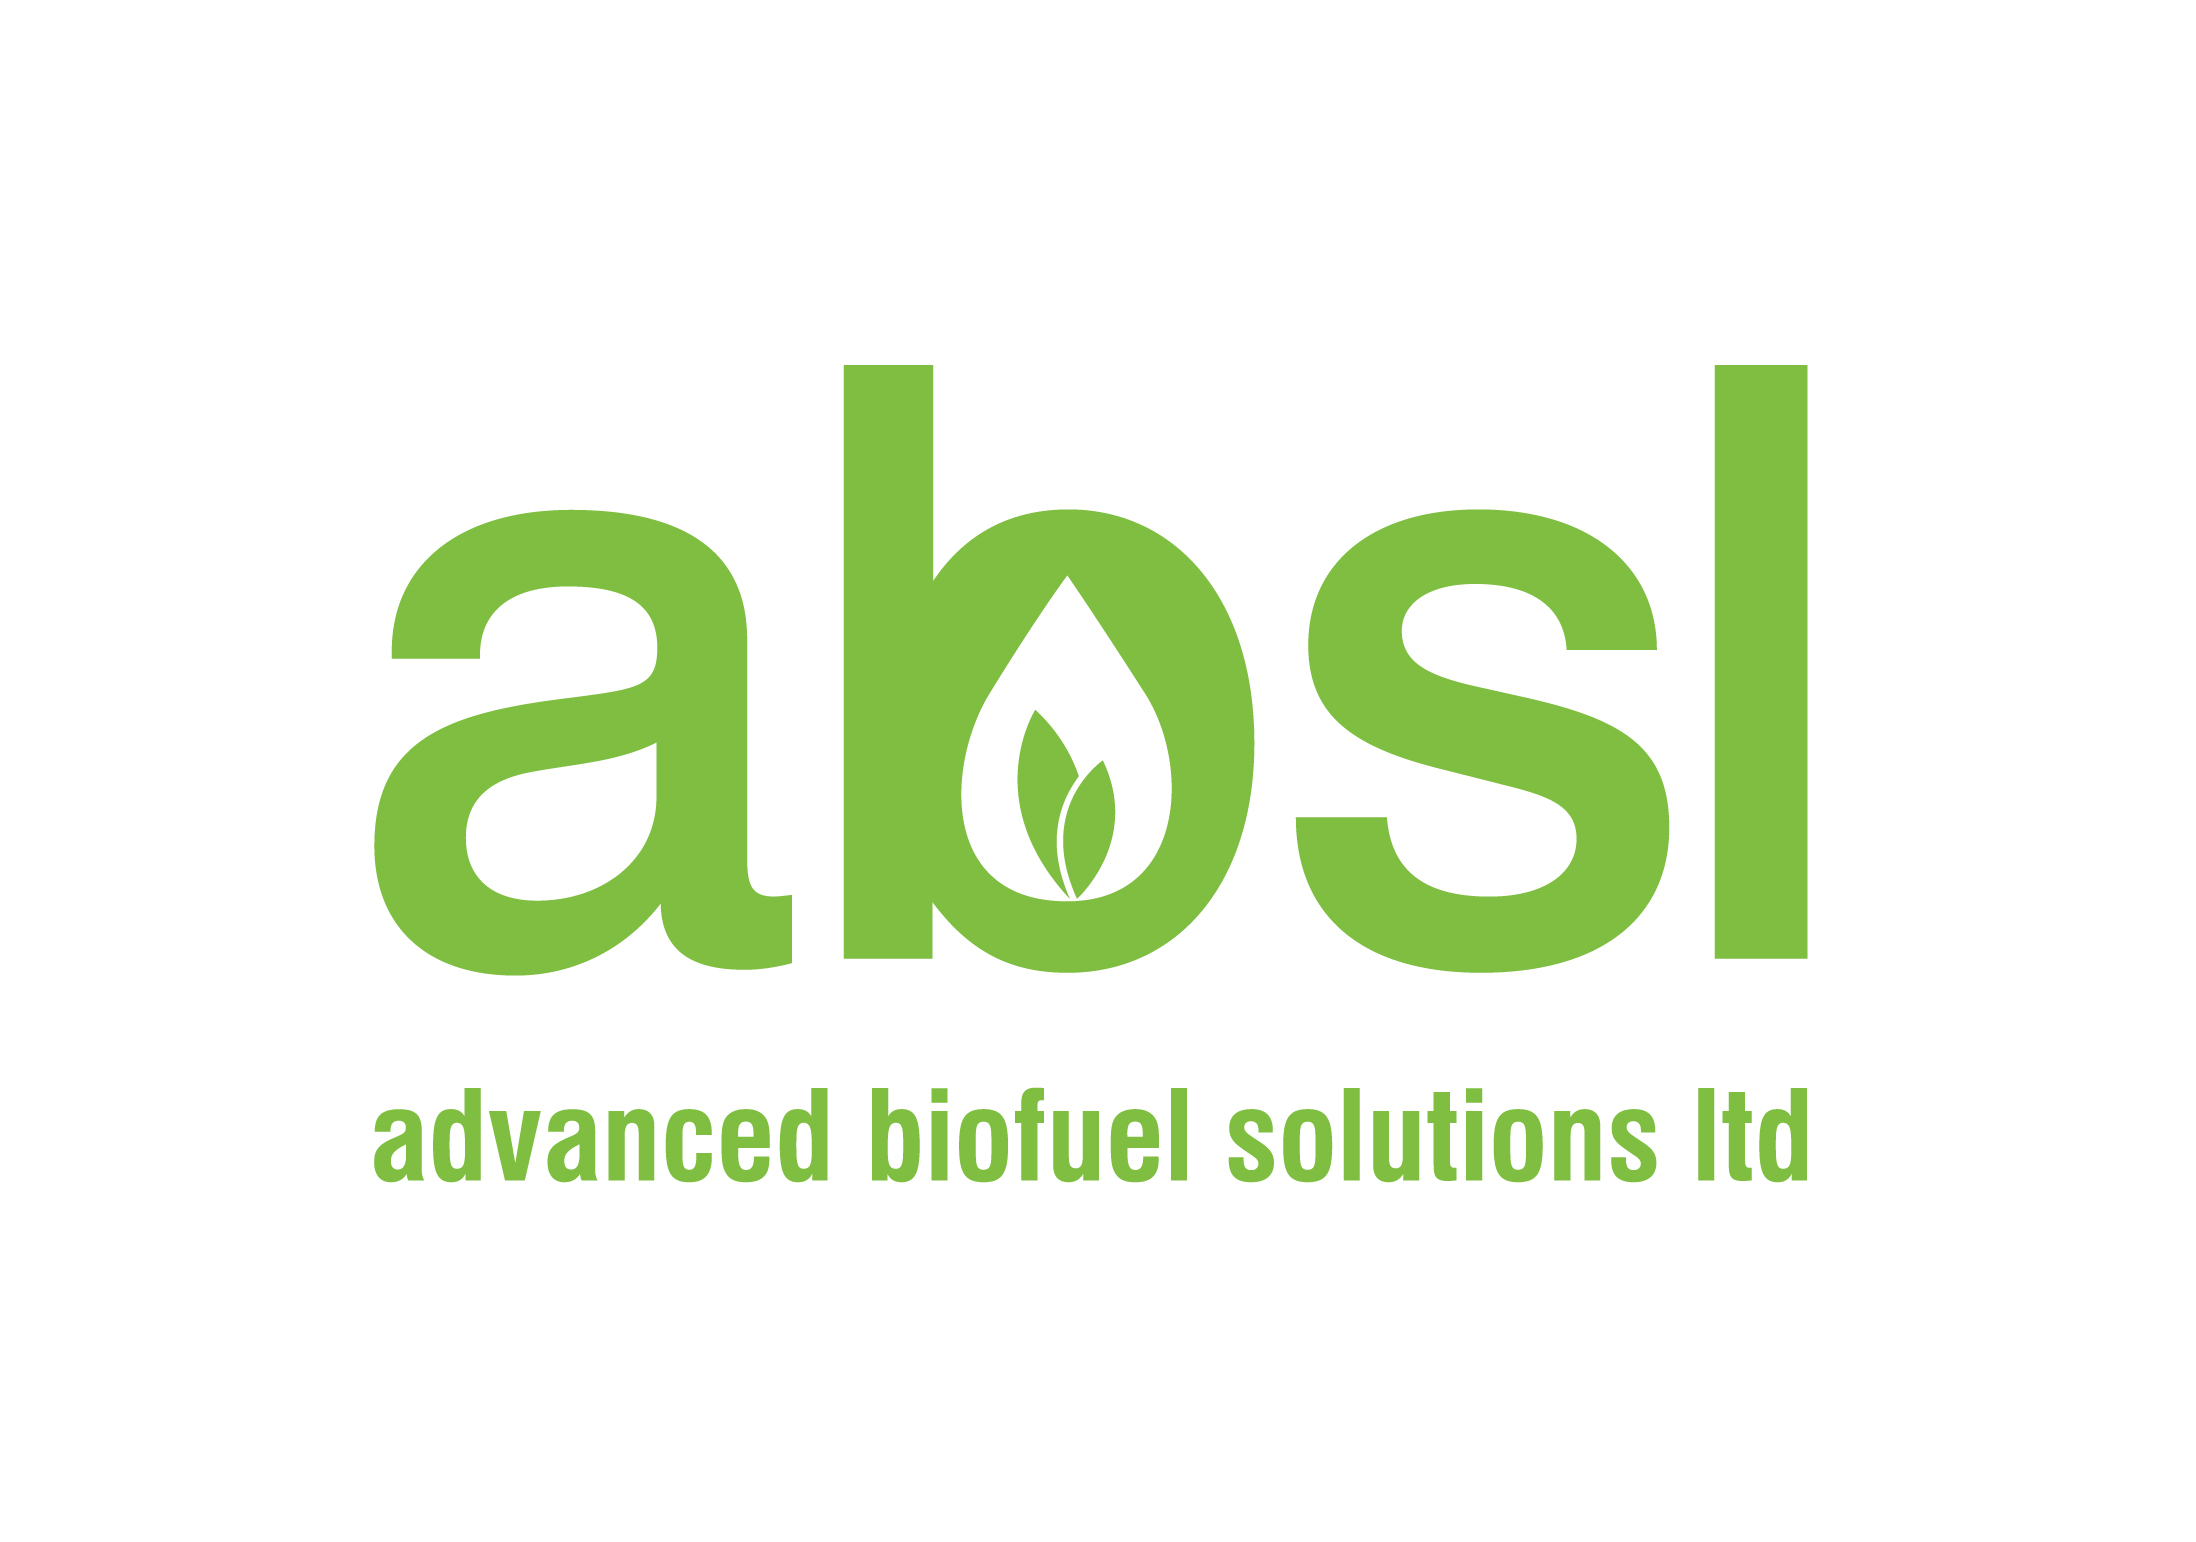 Organisation Logo - Advanced Biofuel Solutions Ltd